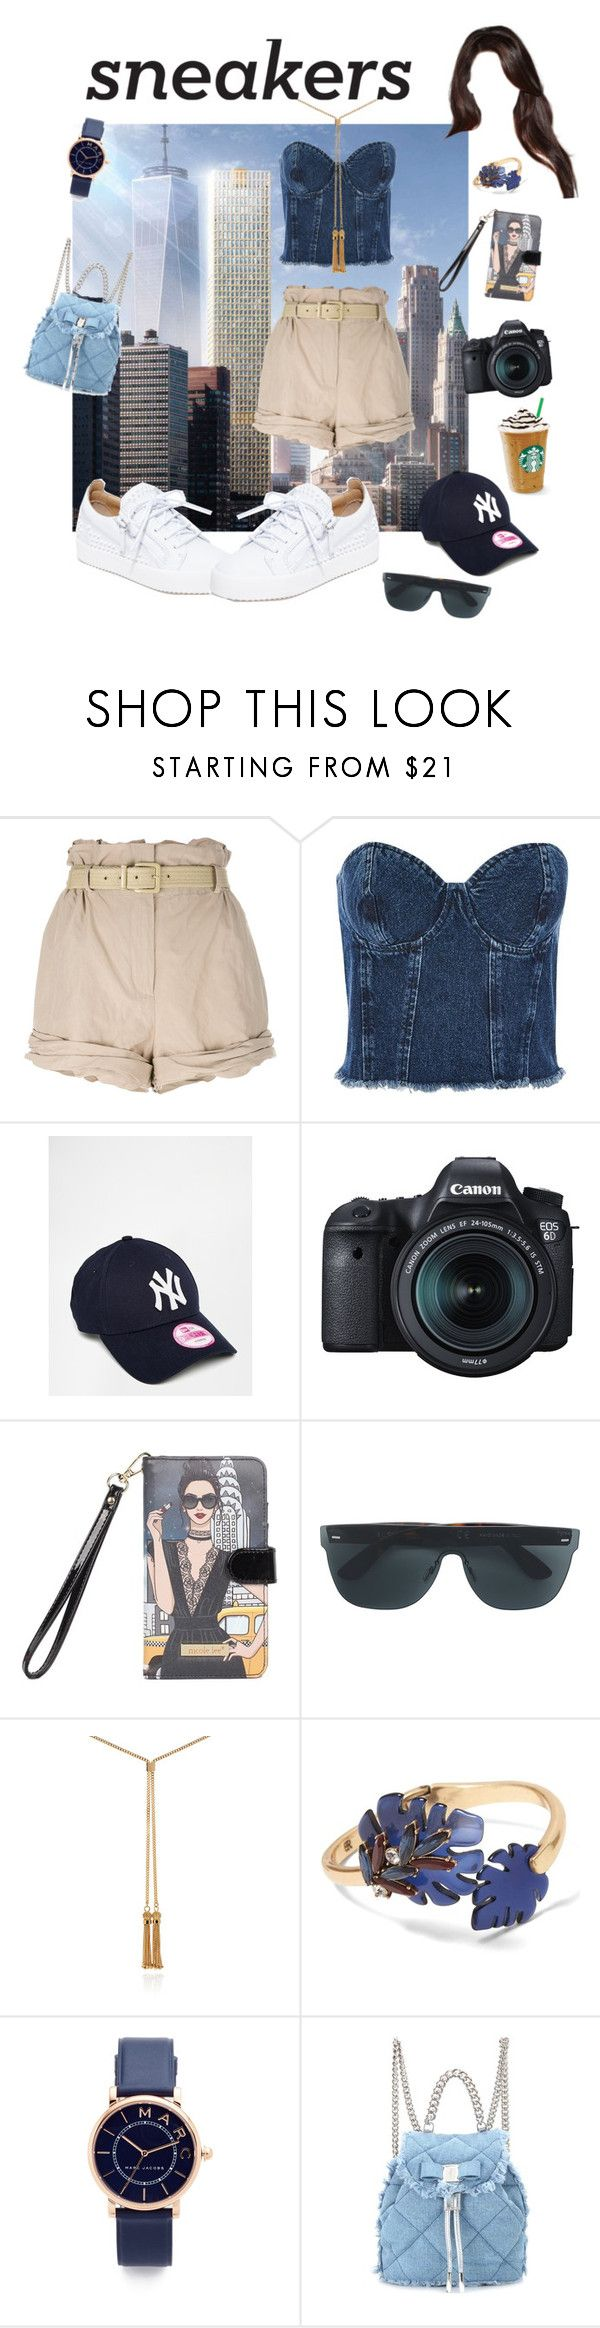 """Fresh kicks: NY City"" by sheri-govender ❤ liked on Polyvore featuring Moschino, Topshop, New Era, Eos, Universal, RetroSuperFuture, Chloé, Banana Republic, Marc Jacobs and Salvatore Ferragamo"